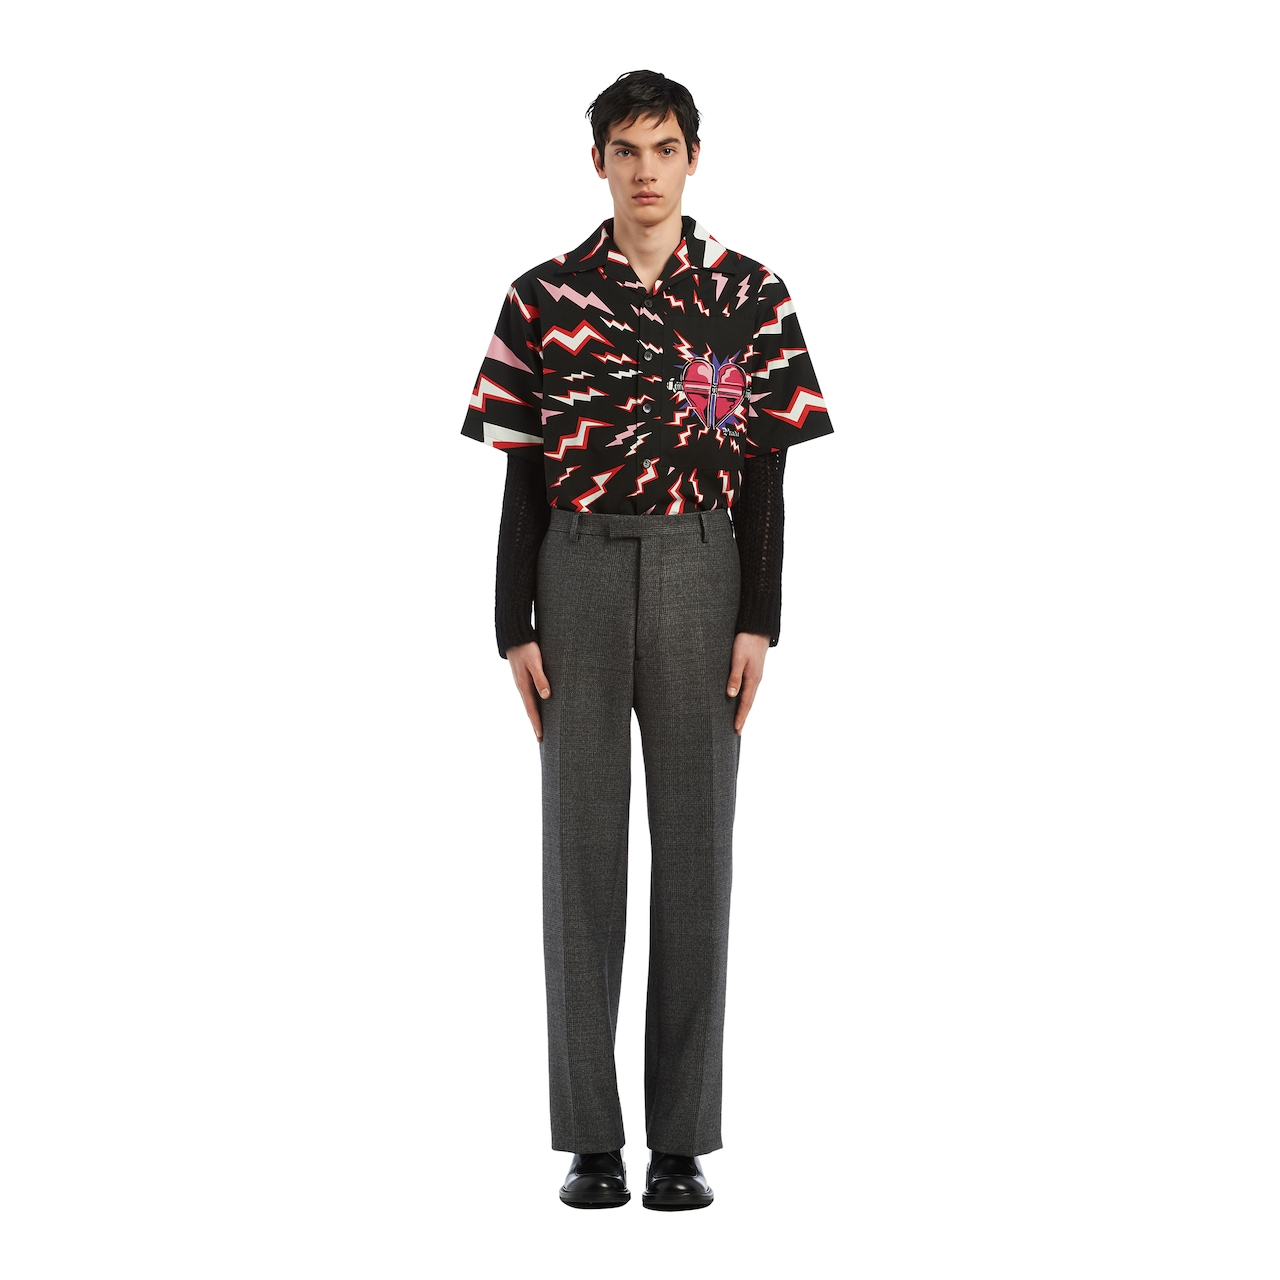 Compact mouliné Prince of Wales trousers